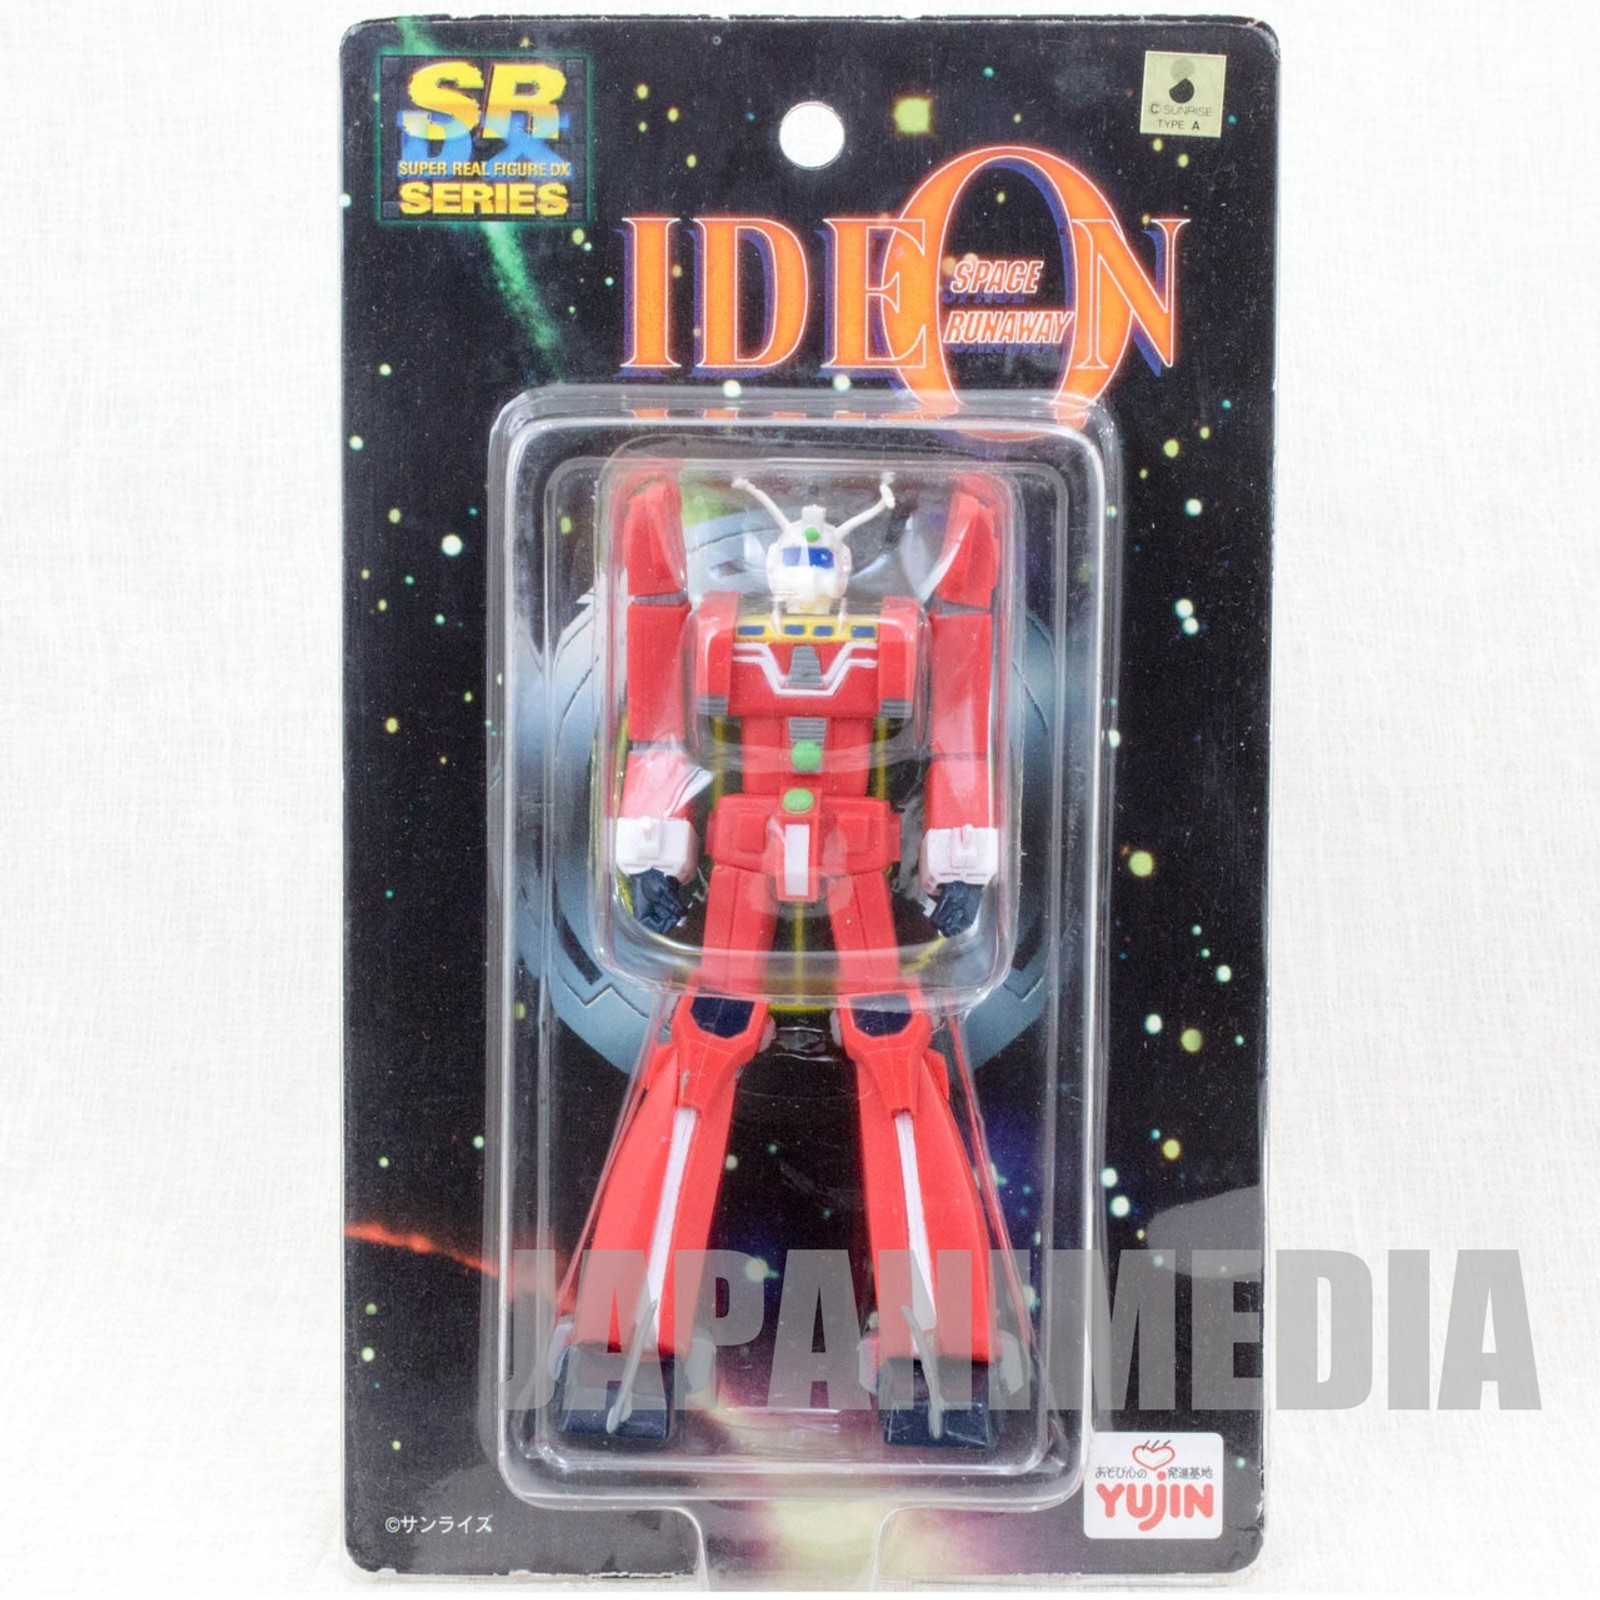 Space Runaway Ideon SR DX Figure Yuhin JAPAN ANIME MANGA